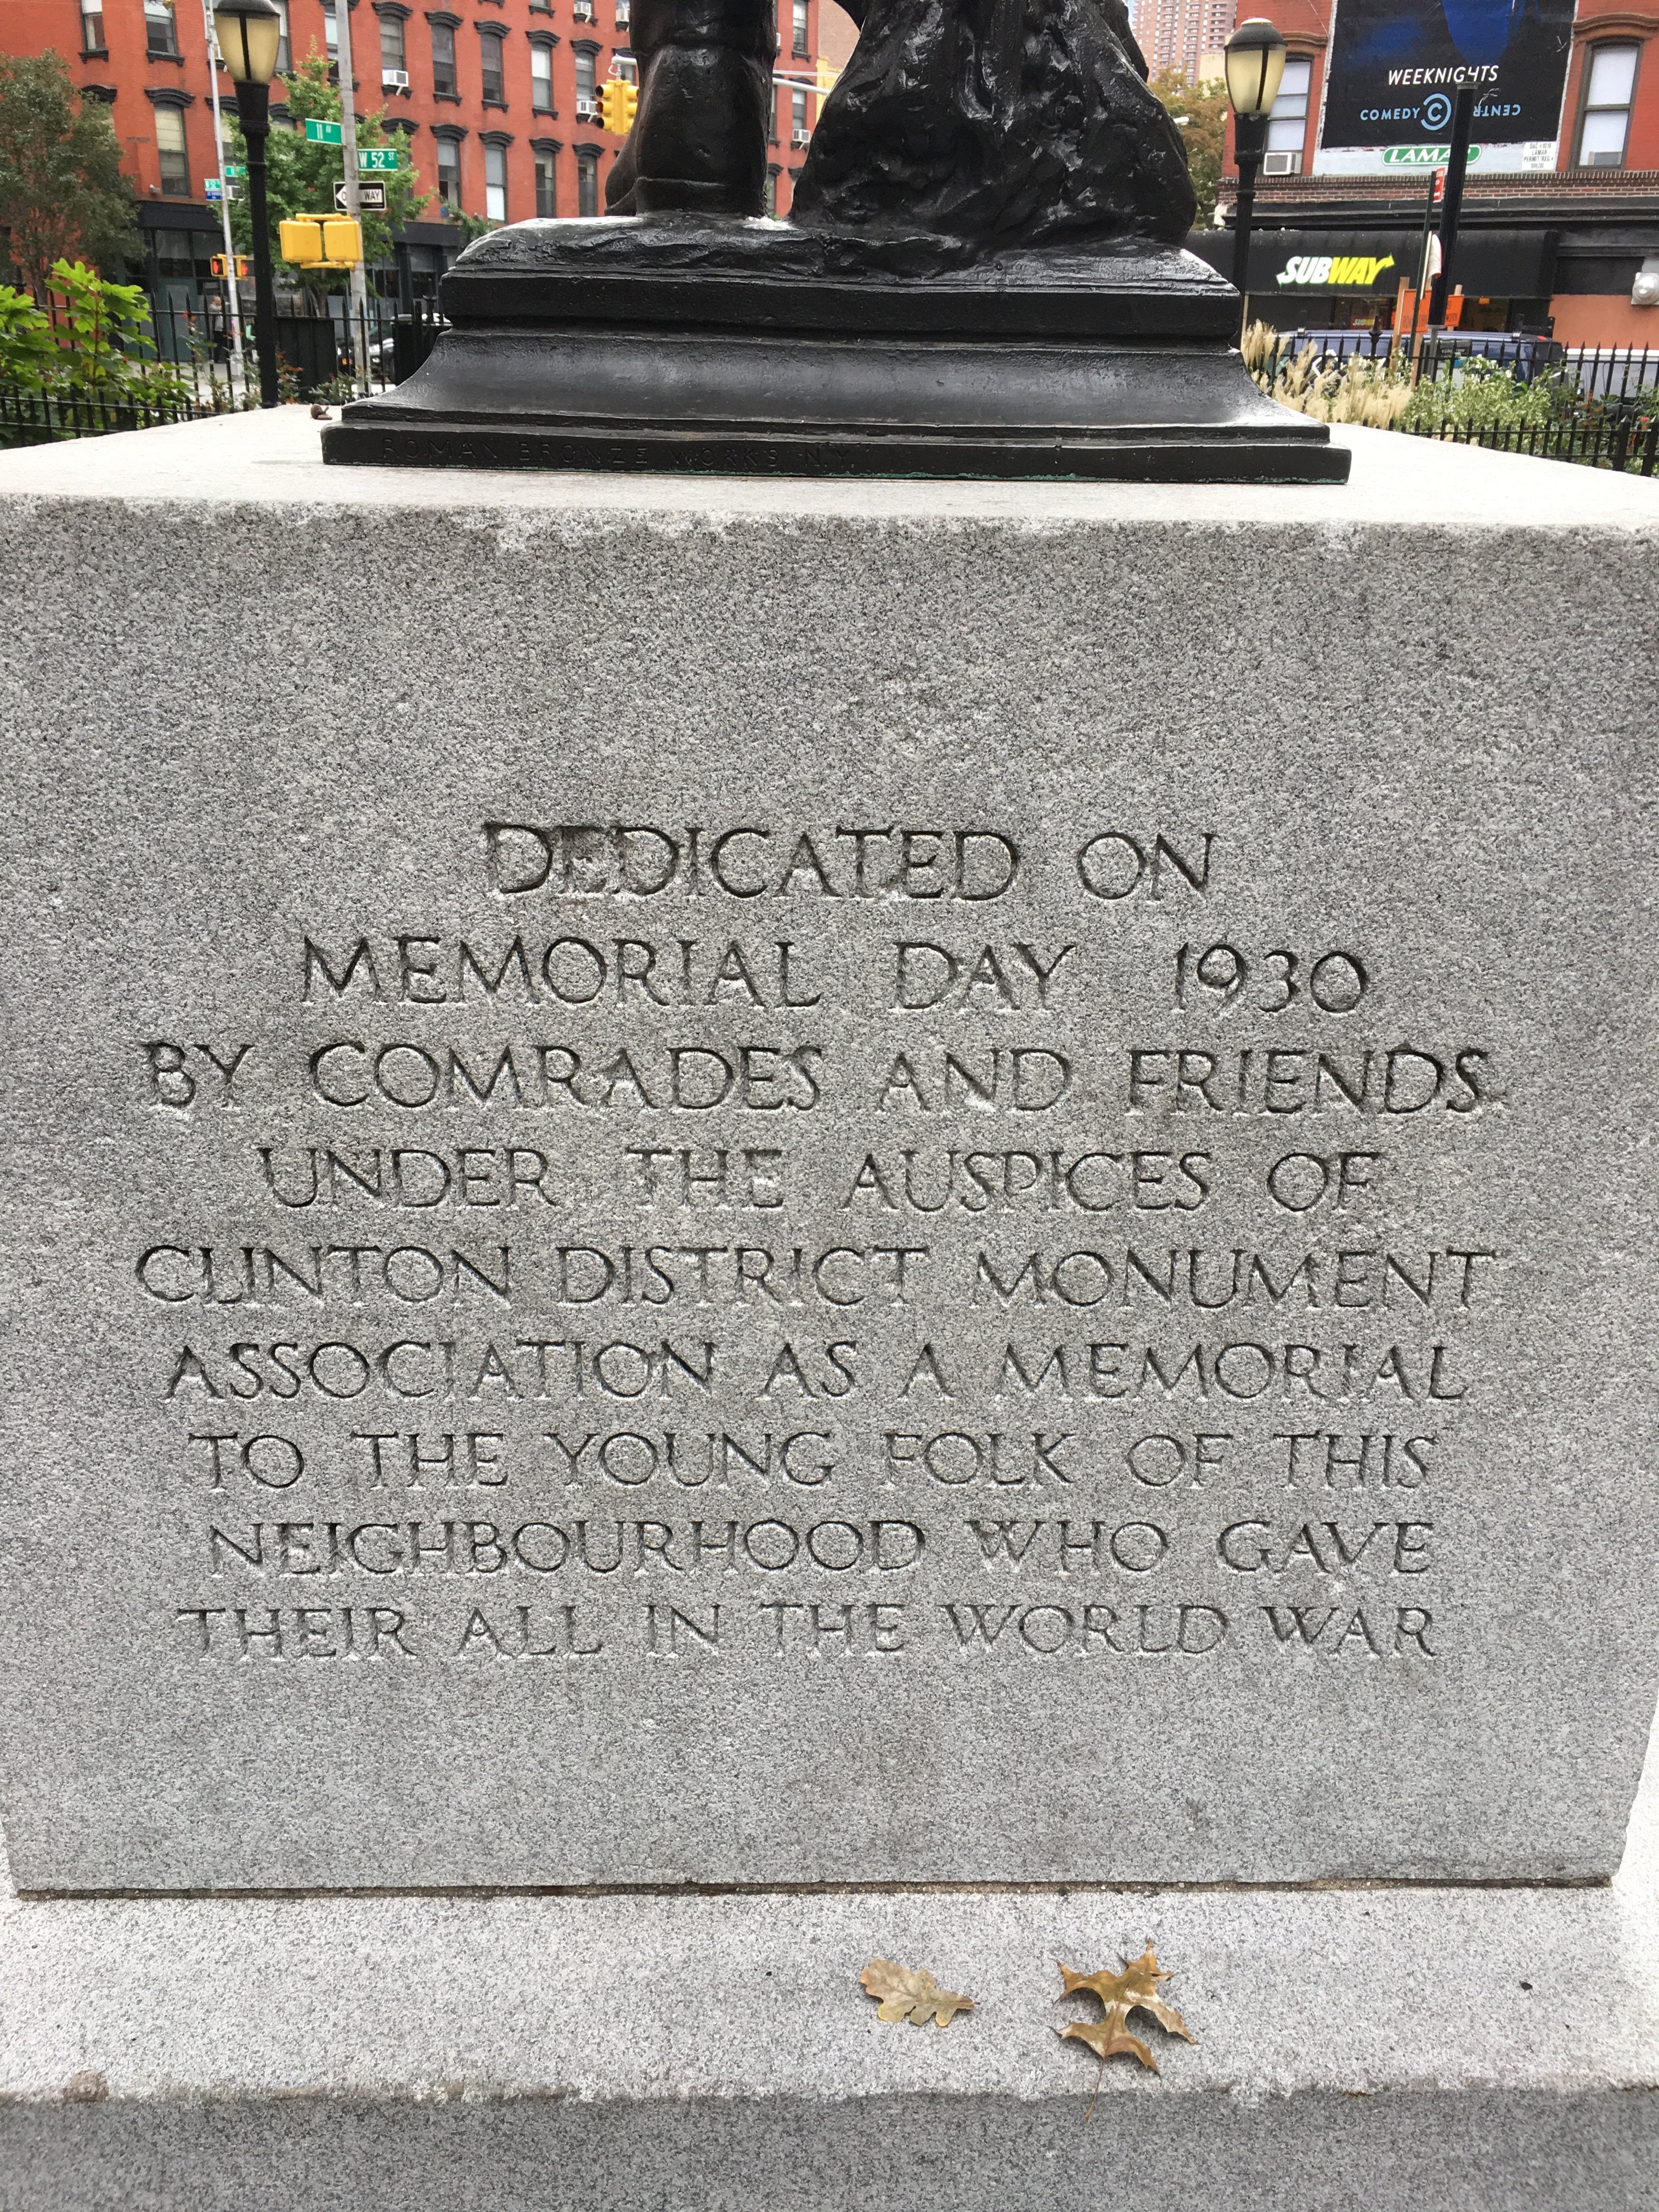 The engraved dedication on the back side of the foundation.